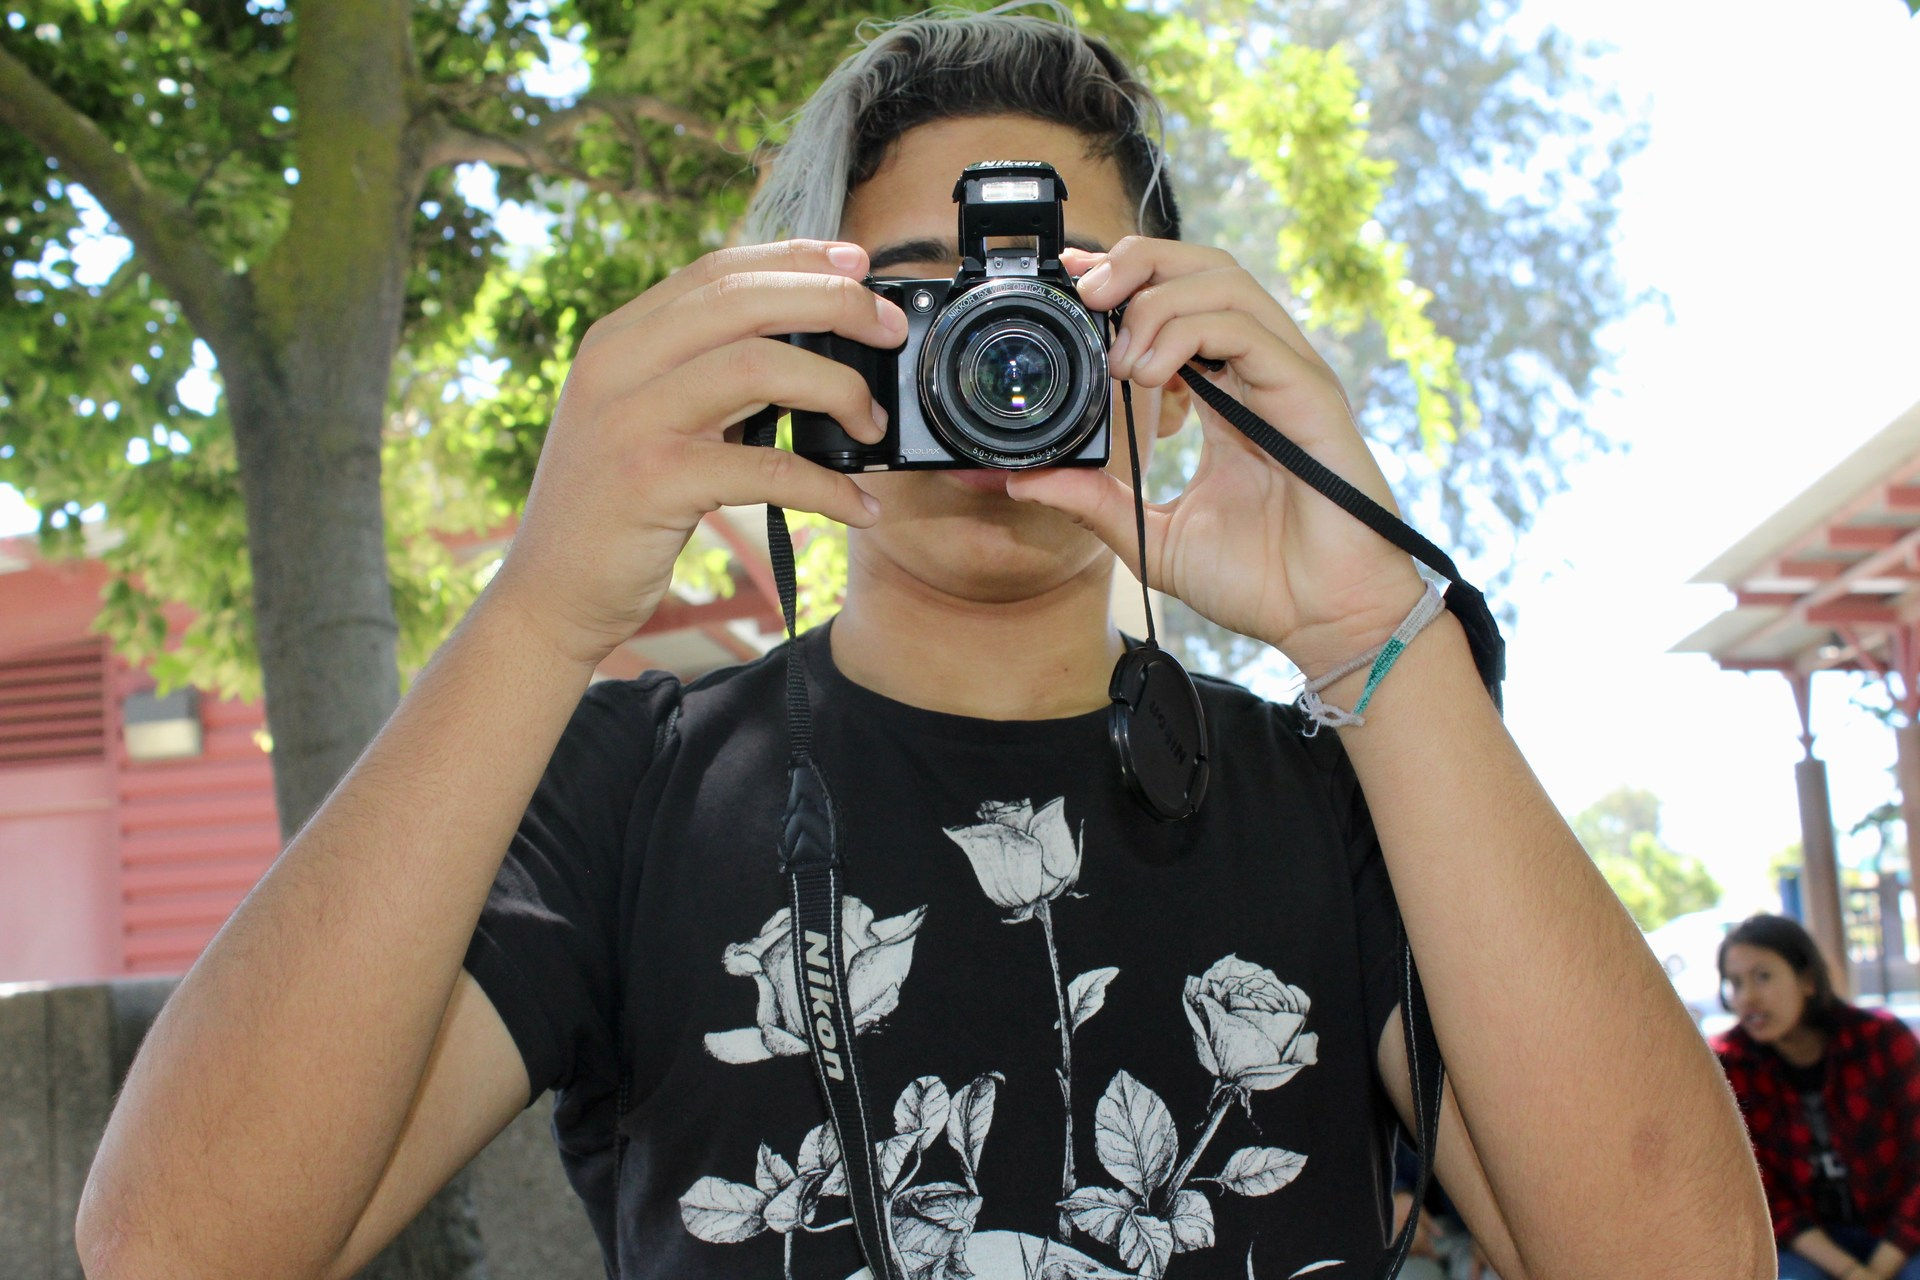 Student with a camera